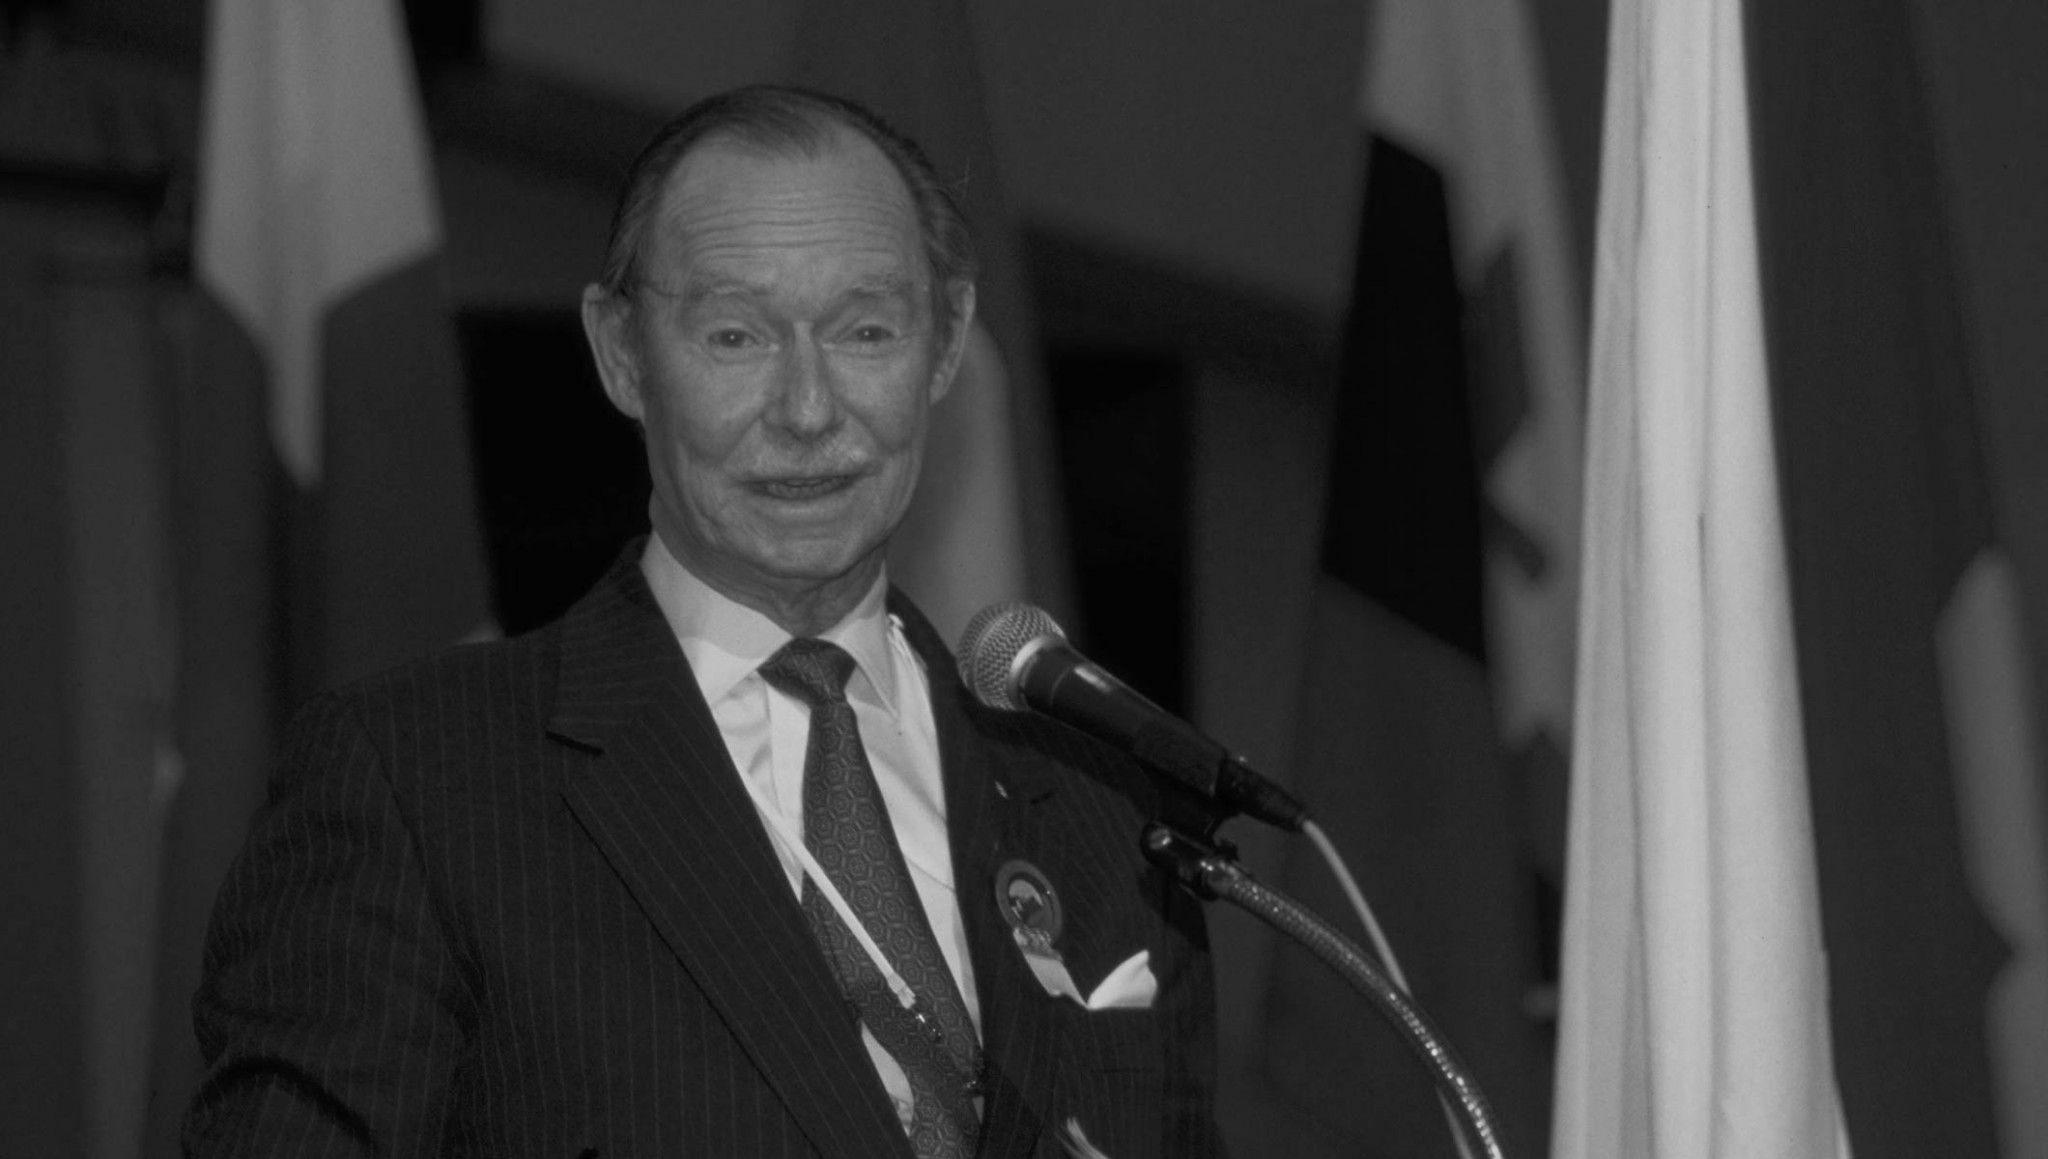 The Grand Duke Jean of Luxembourg has died at the age of 98 ©IOC